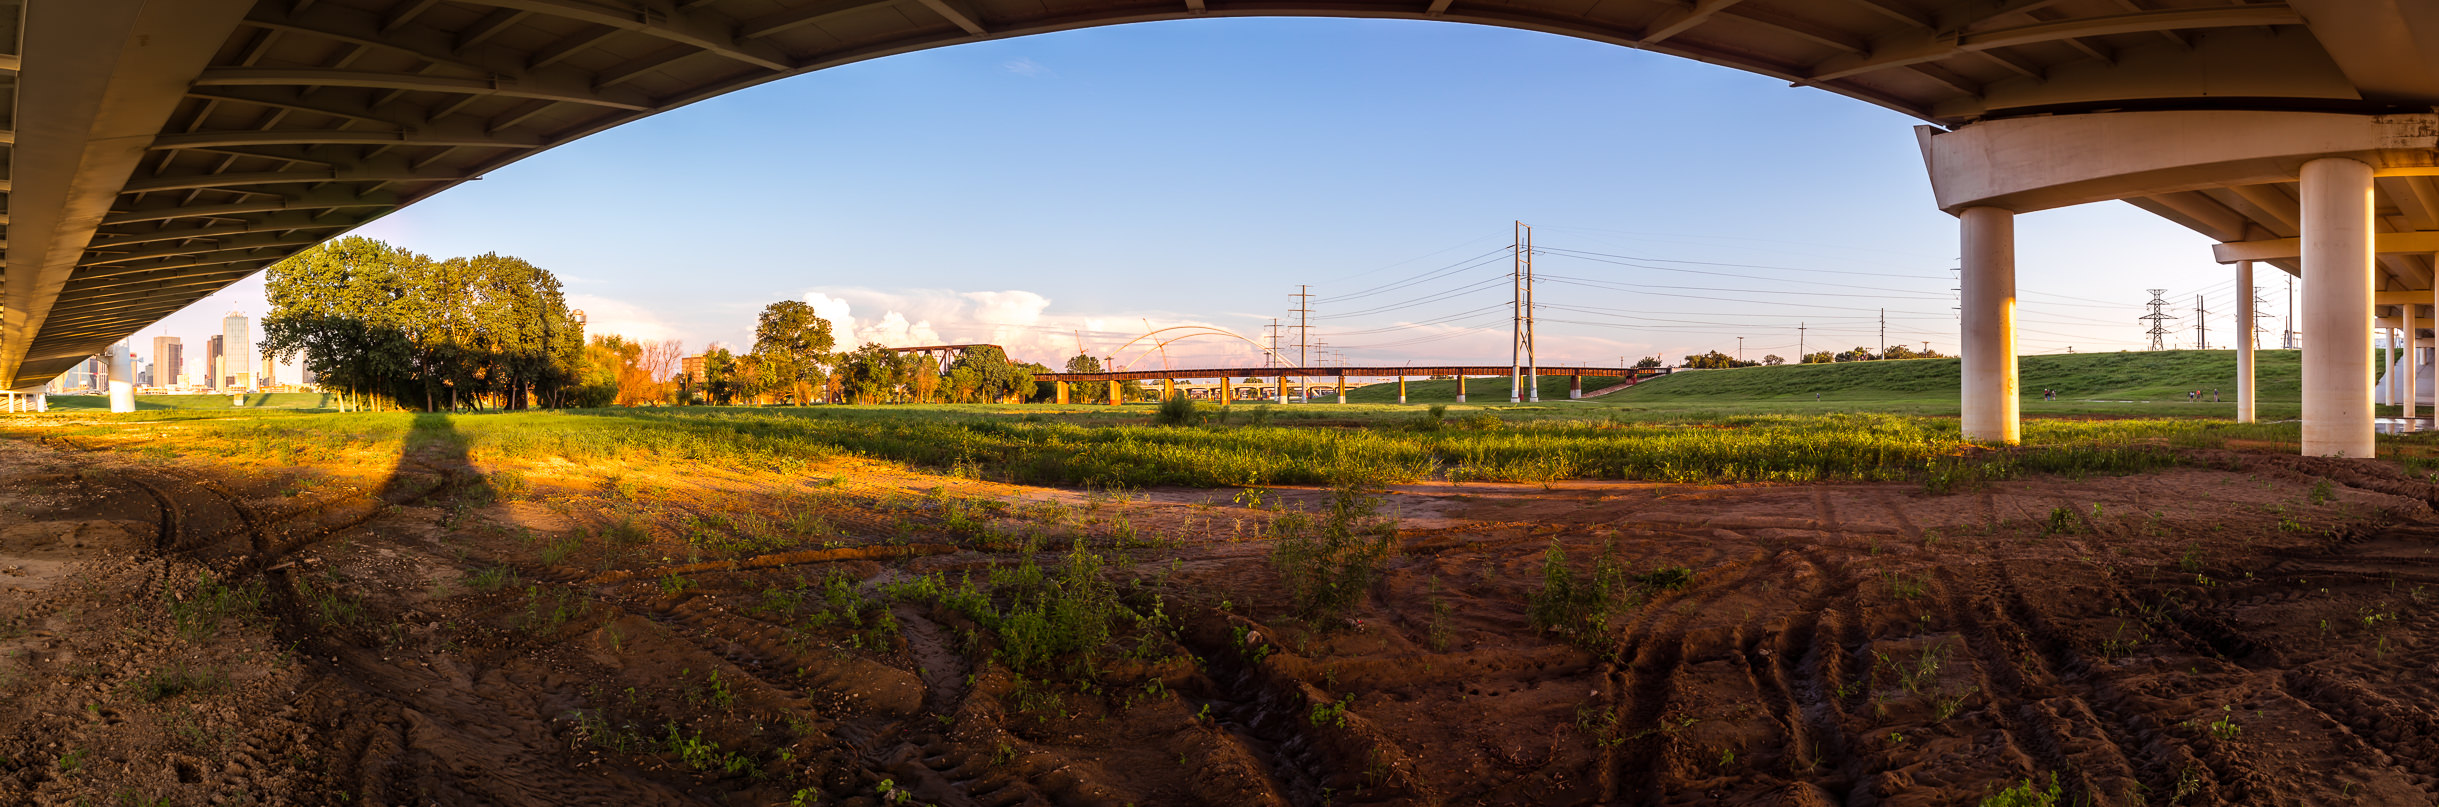 A panoramic view of the Trinity River floodplain as seen from under Dallas' Margaret Hunt Hill Bridge.